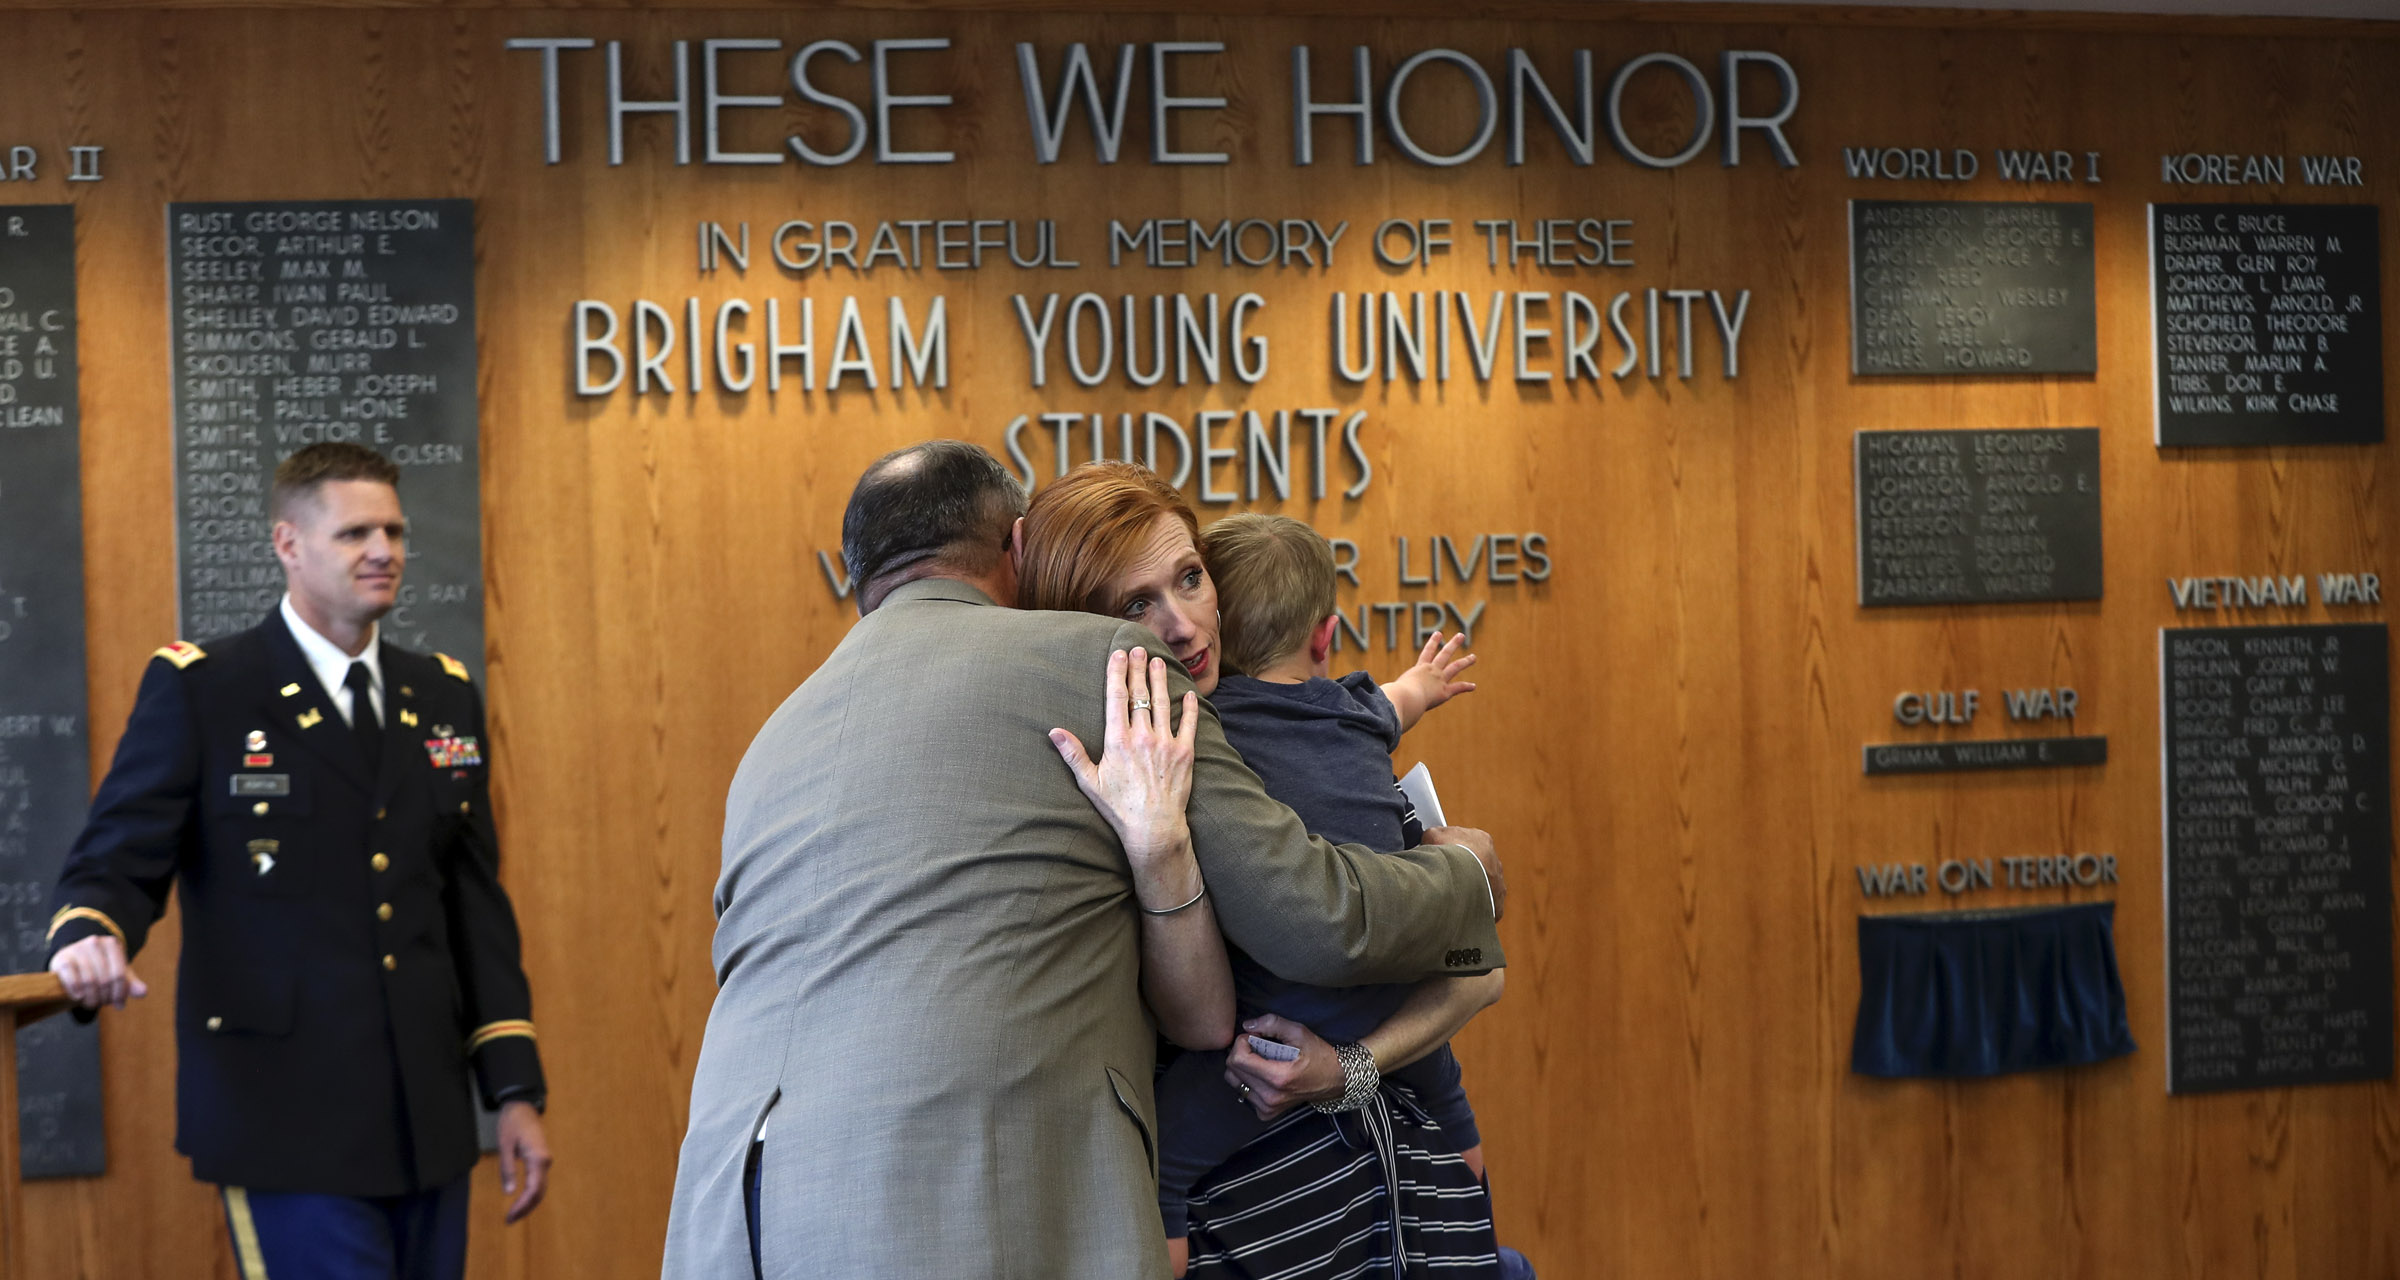 Maj. Gen. Brian L. Tarbet hugs Jennie Taylor during a ceremony where the name of her late husband, Maj. Brent Taylor, was added to the Reflection Room Memorial Wall in the Wilkinson Center on the BYU campus in Provo on Thursday, May 23, 2019. Taylor was killed in Afghanistan in 2018.